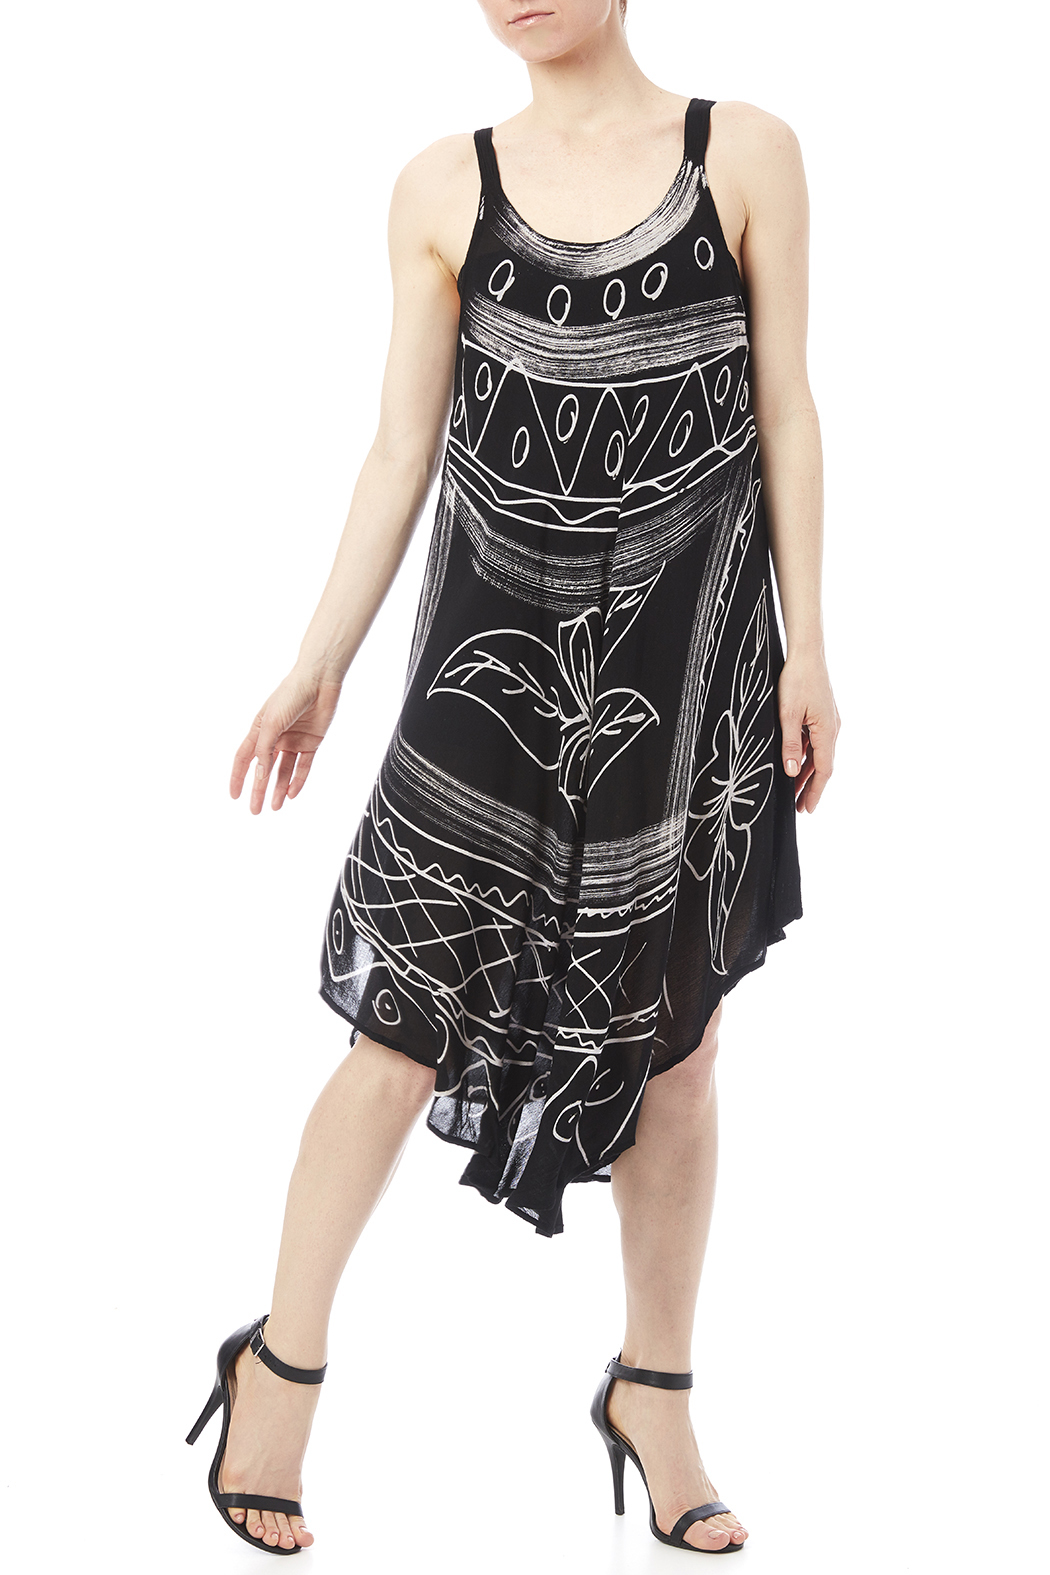 India Boutique Flowing Summer Dress - Main Image